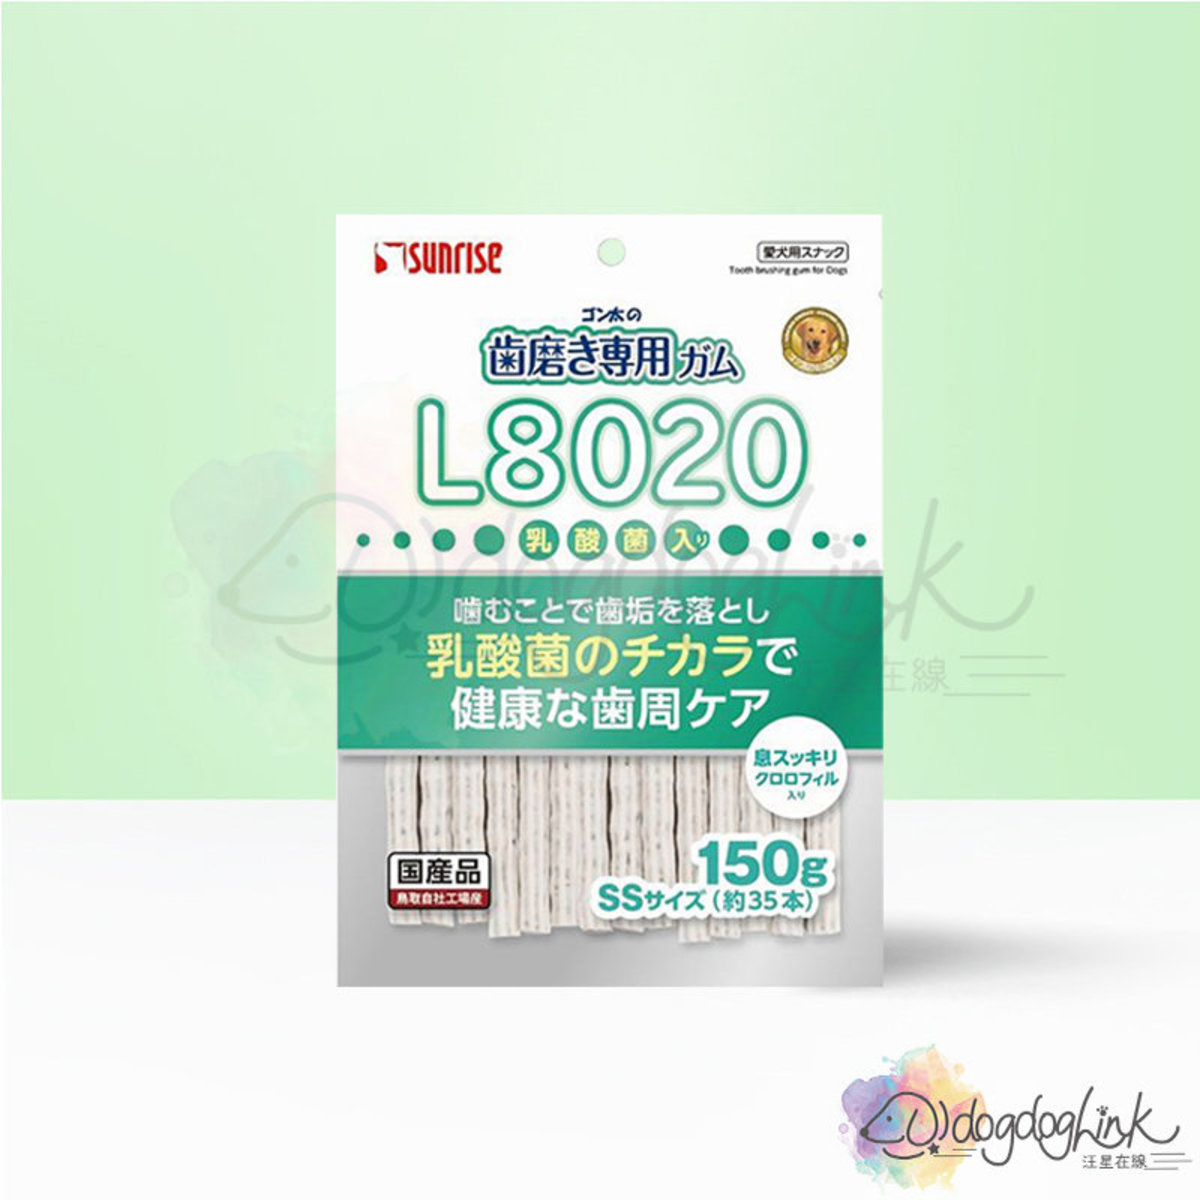 SHG-044 Soft type toothpaste chewing gum with L8020 150g